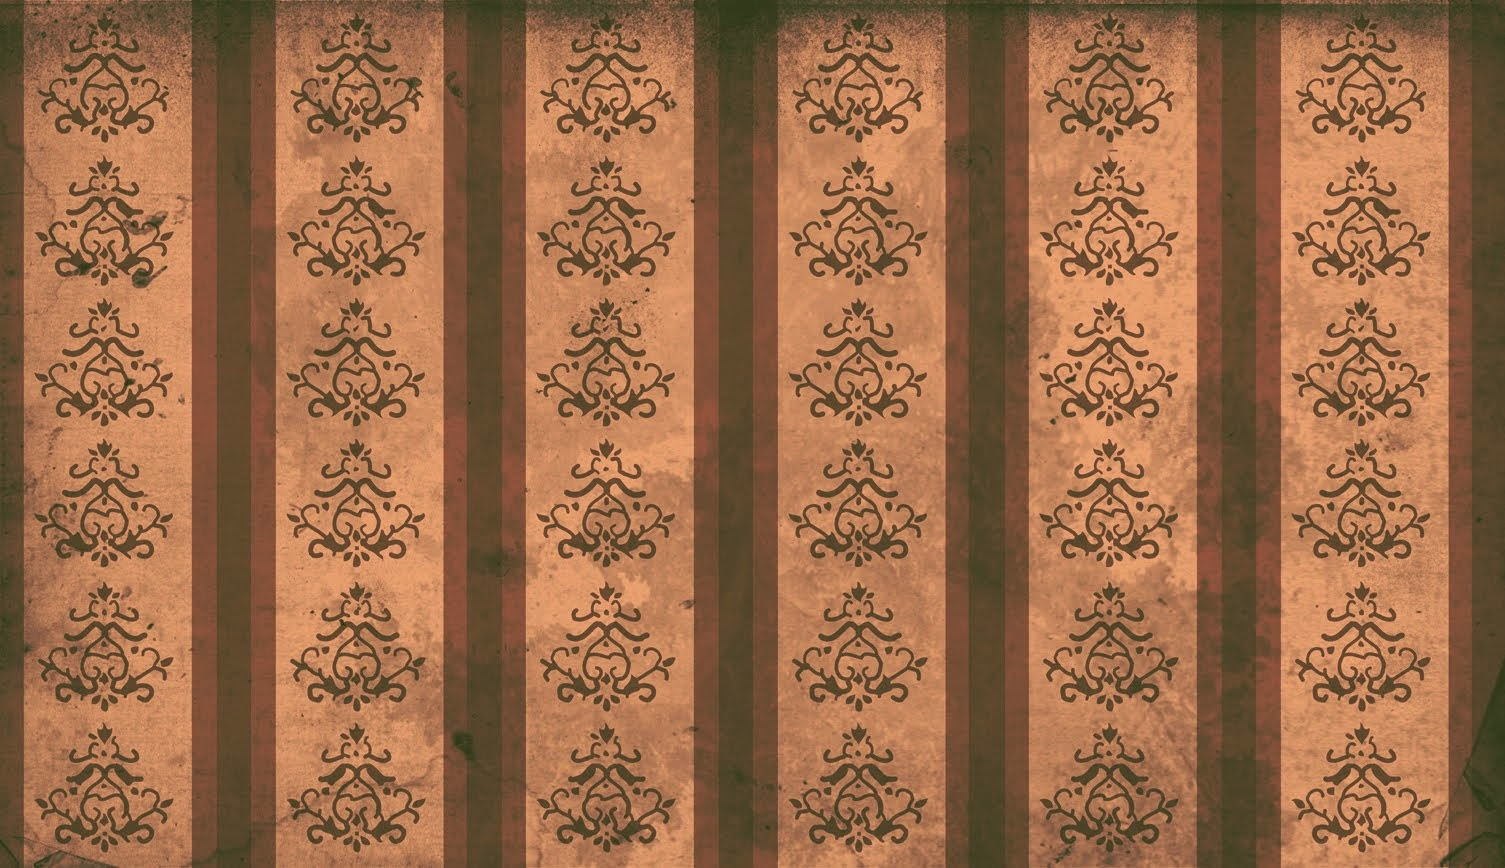 wallpaper victorian windows7 gold - photo #7